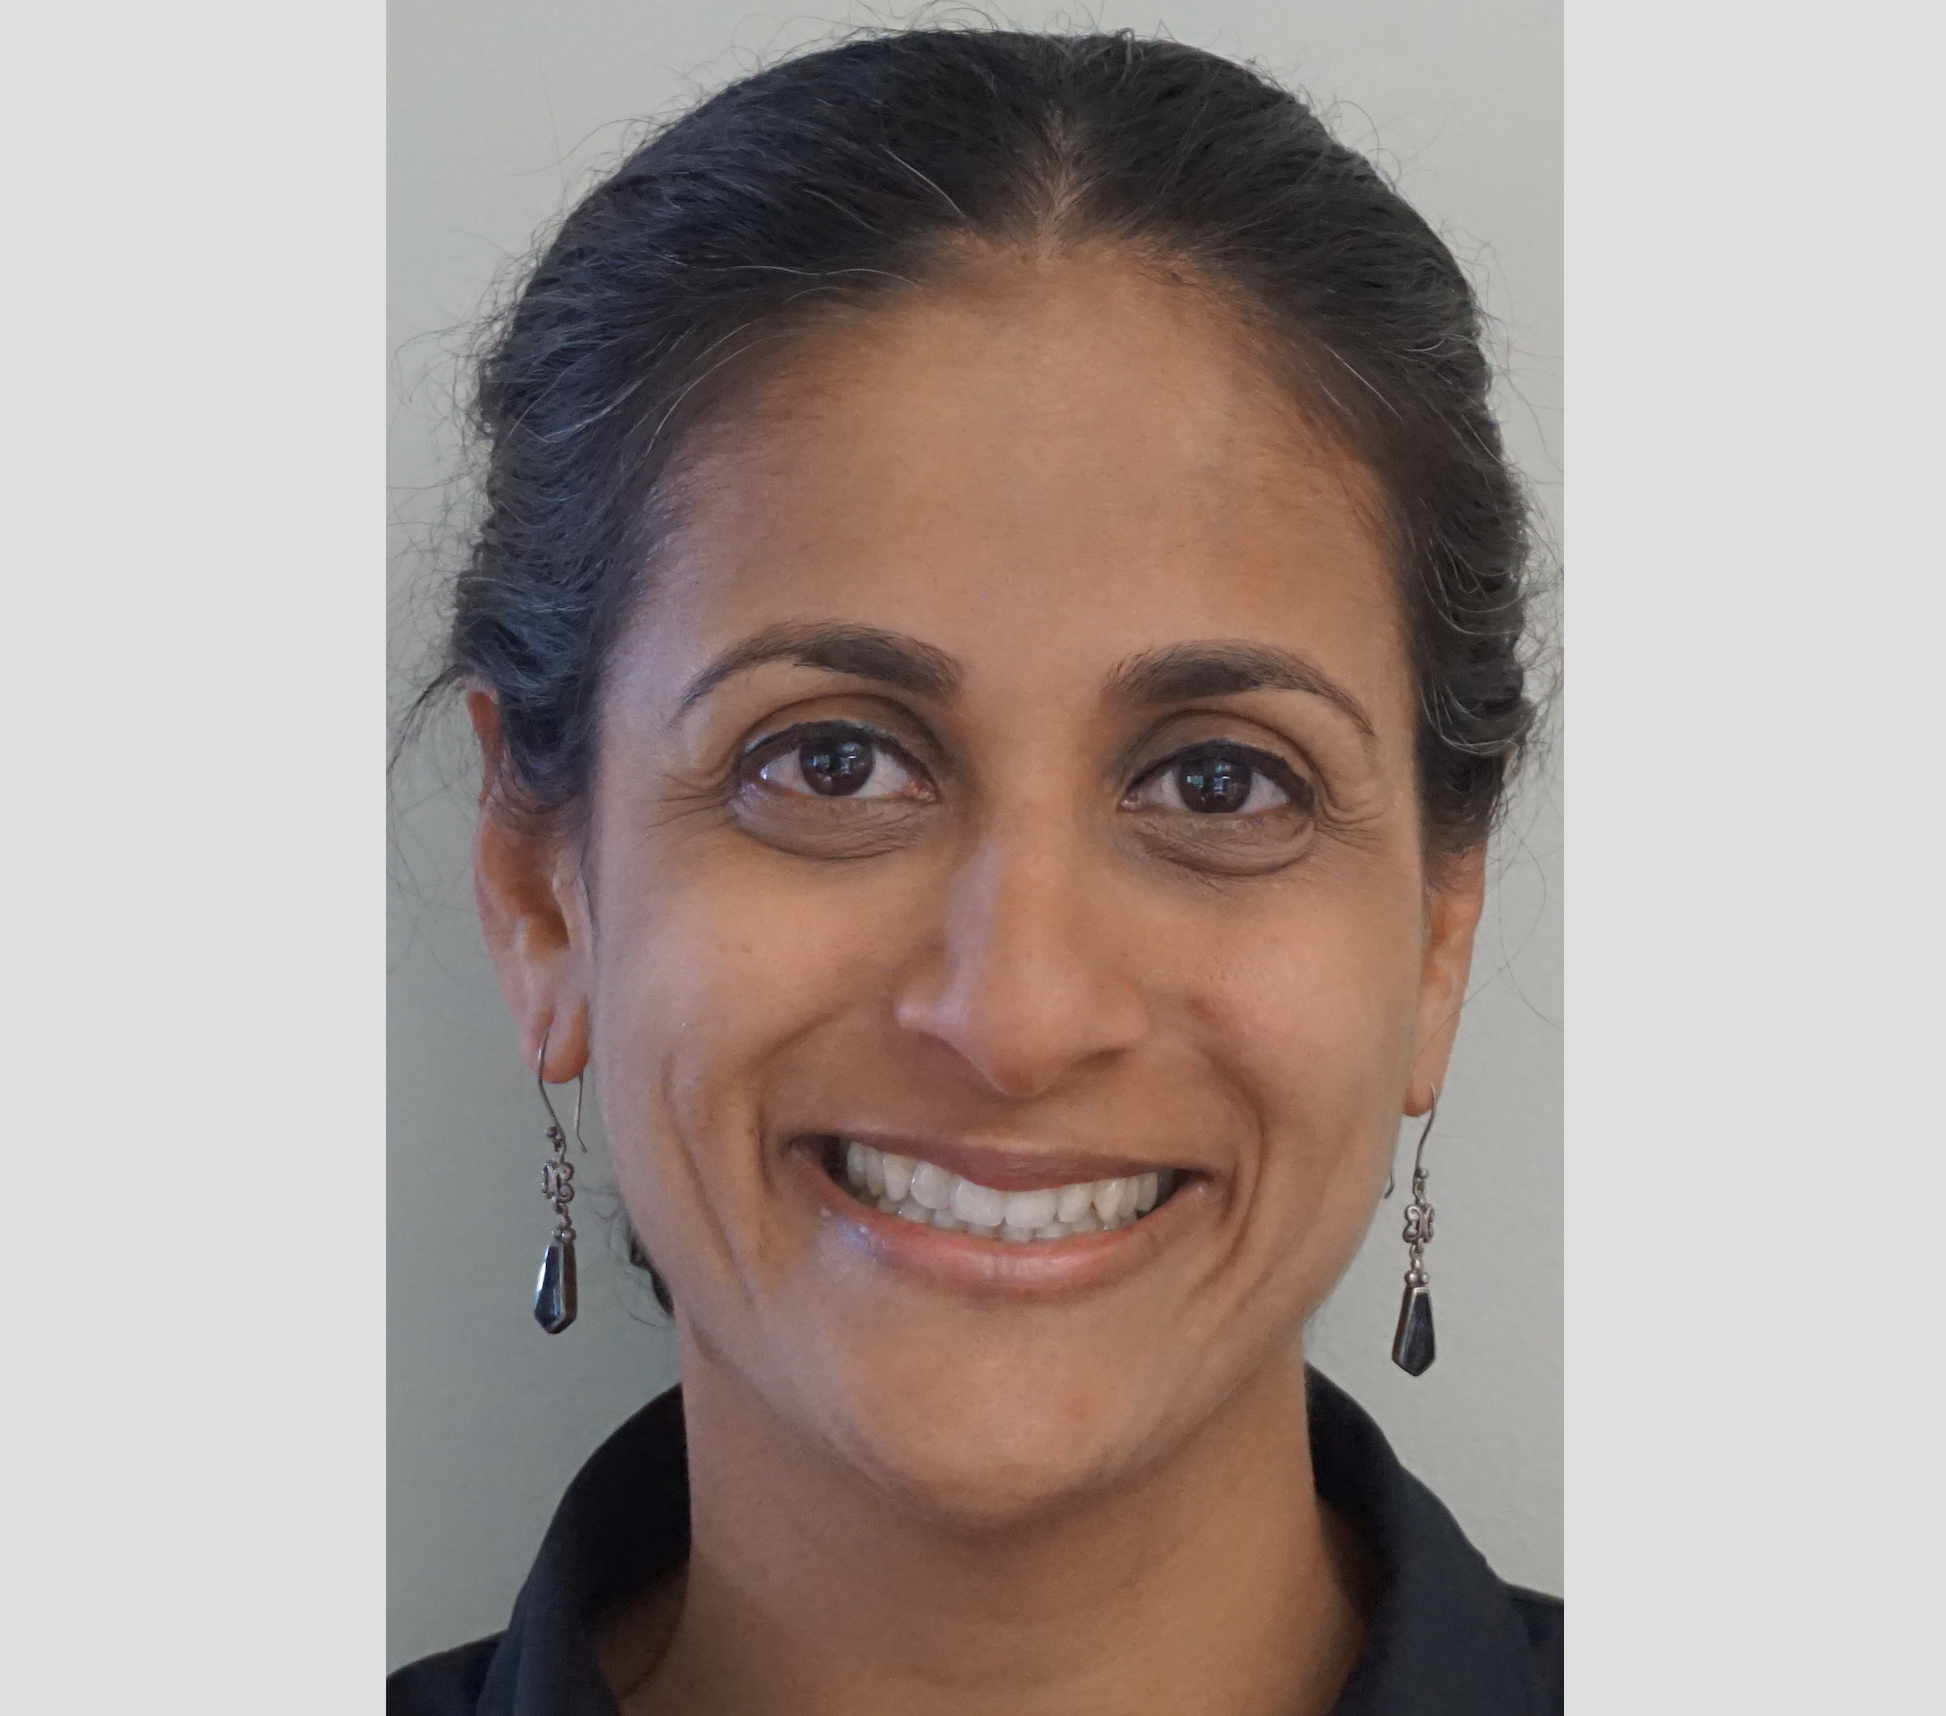 Dr. Lisa Patel, Pediatrician, Clinical Instructor